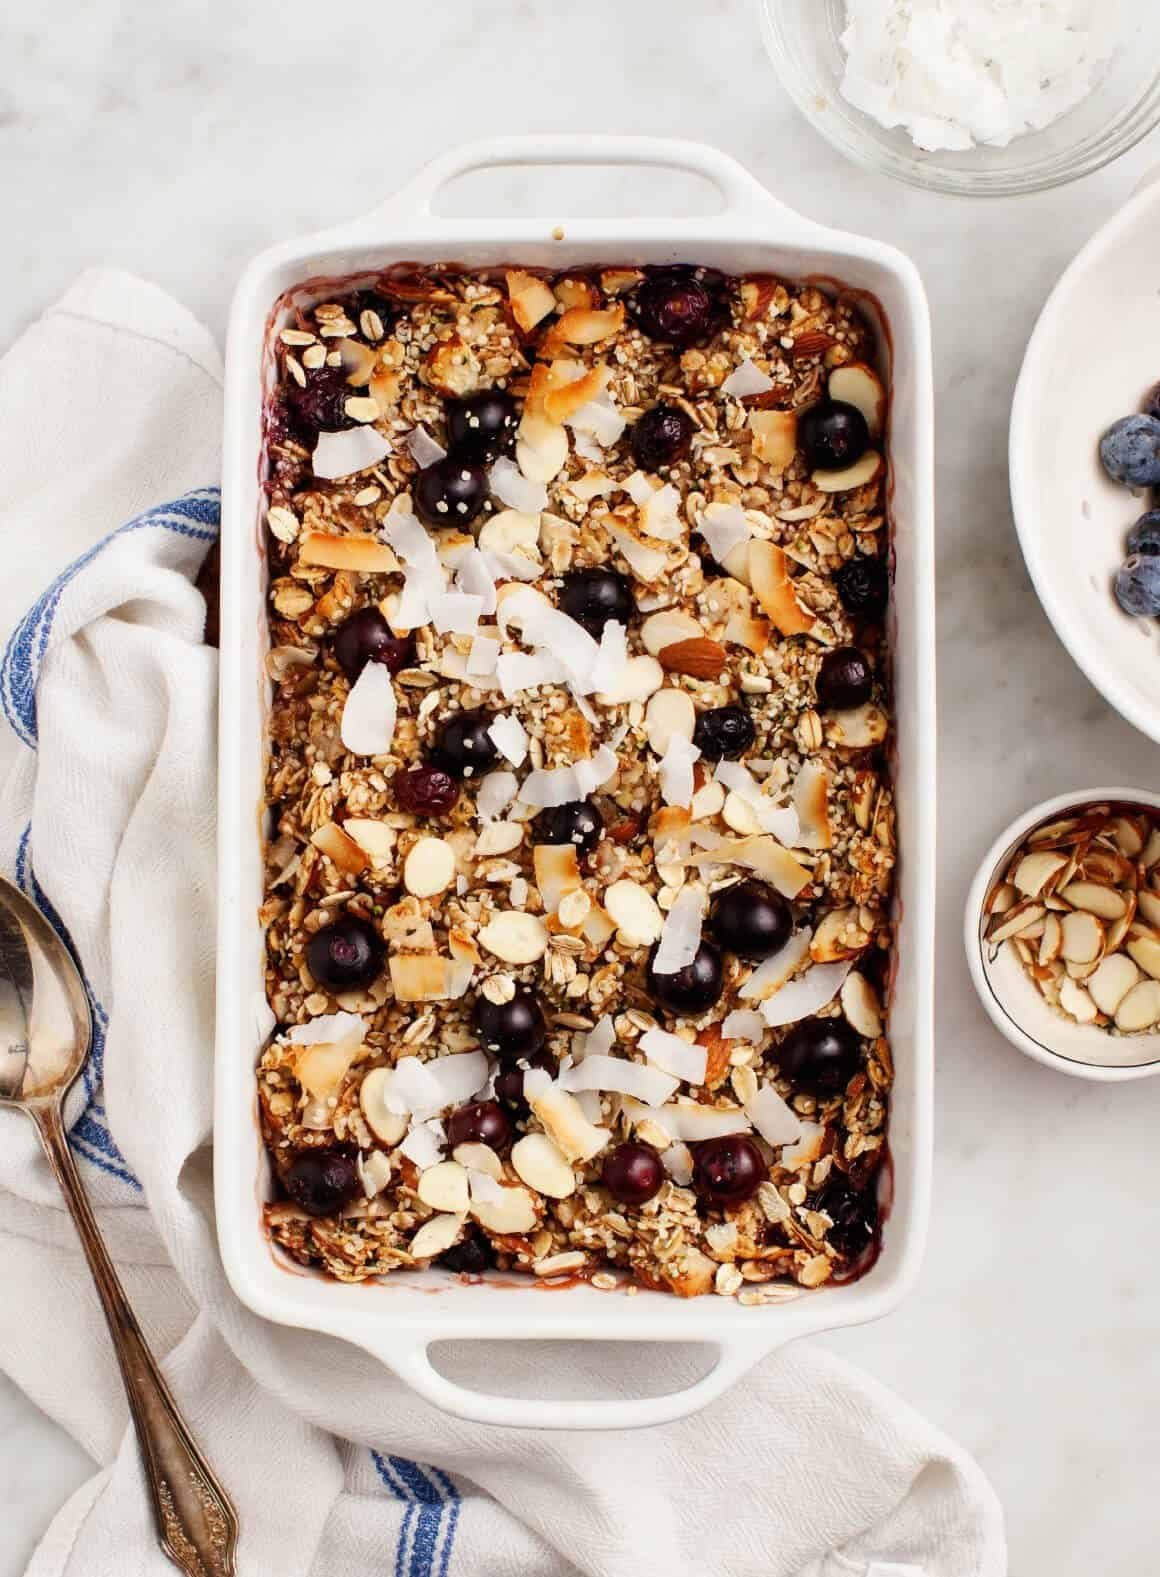 Baked Oatmeal with Blueberries Recipe - Love and Lemons